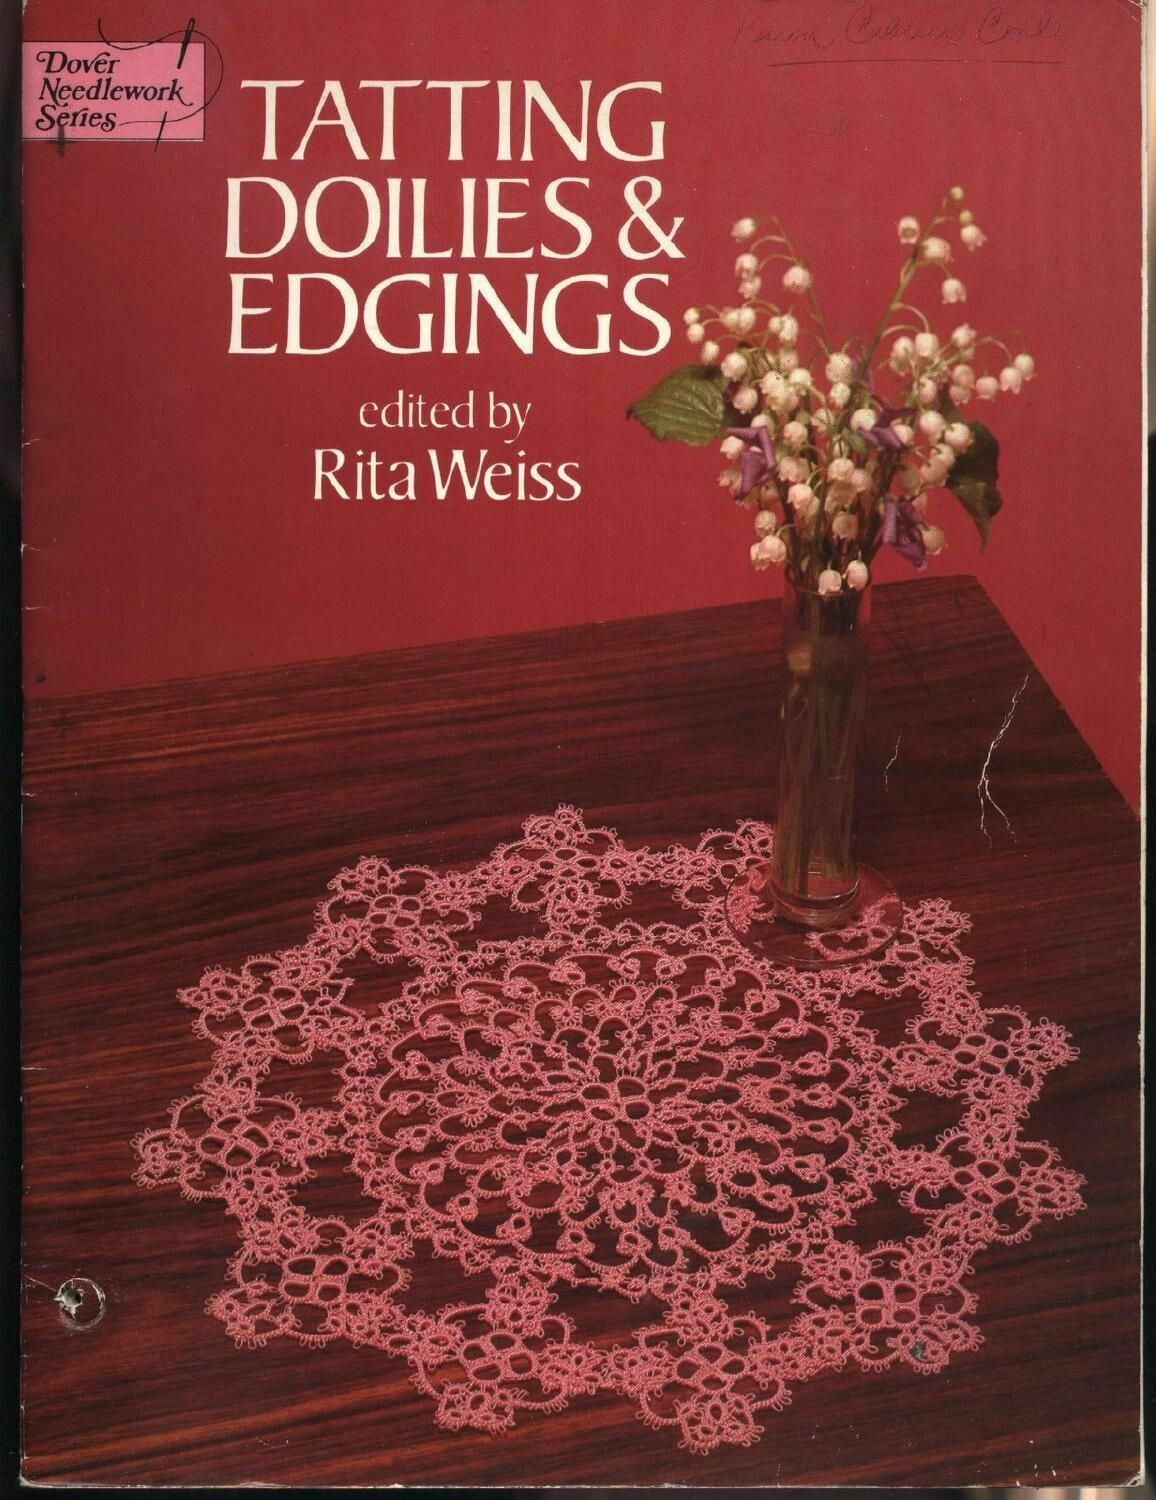 Tatting Doilies & Edgings by Dover Needlework Series